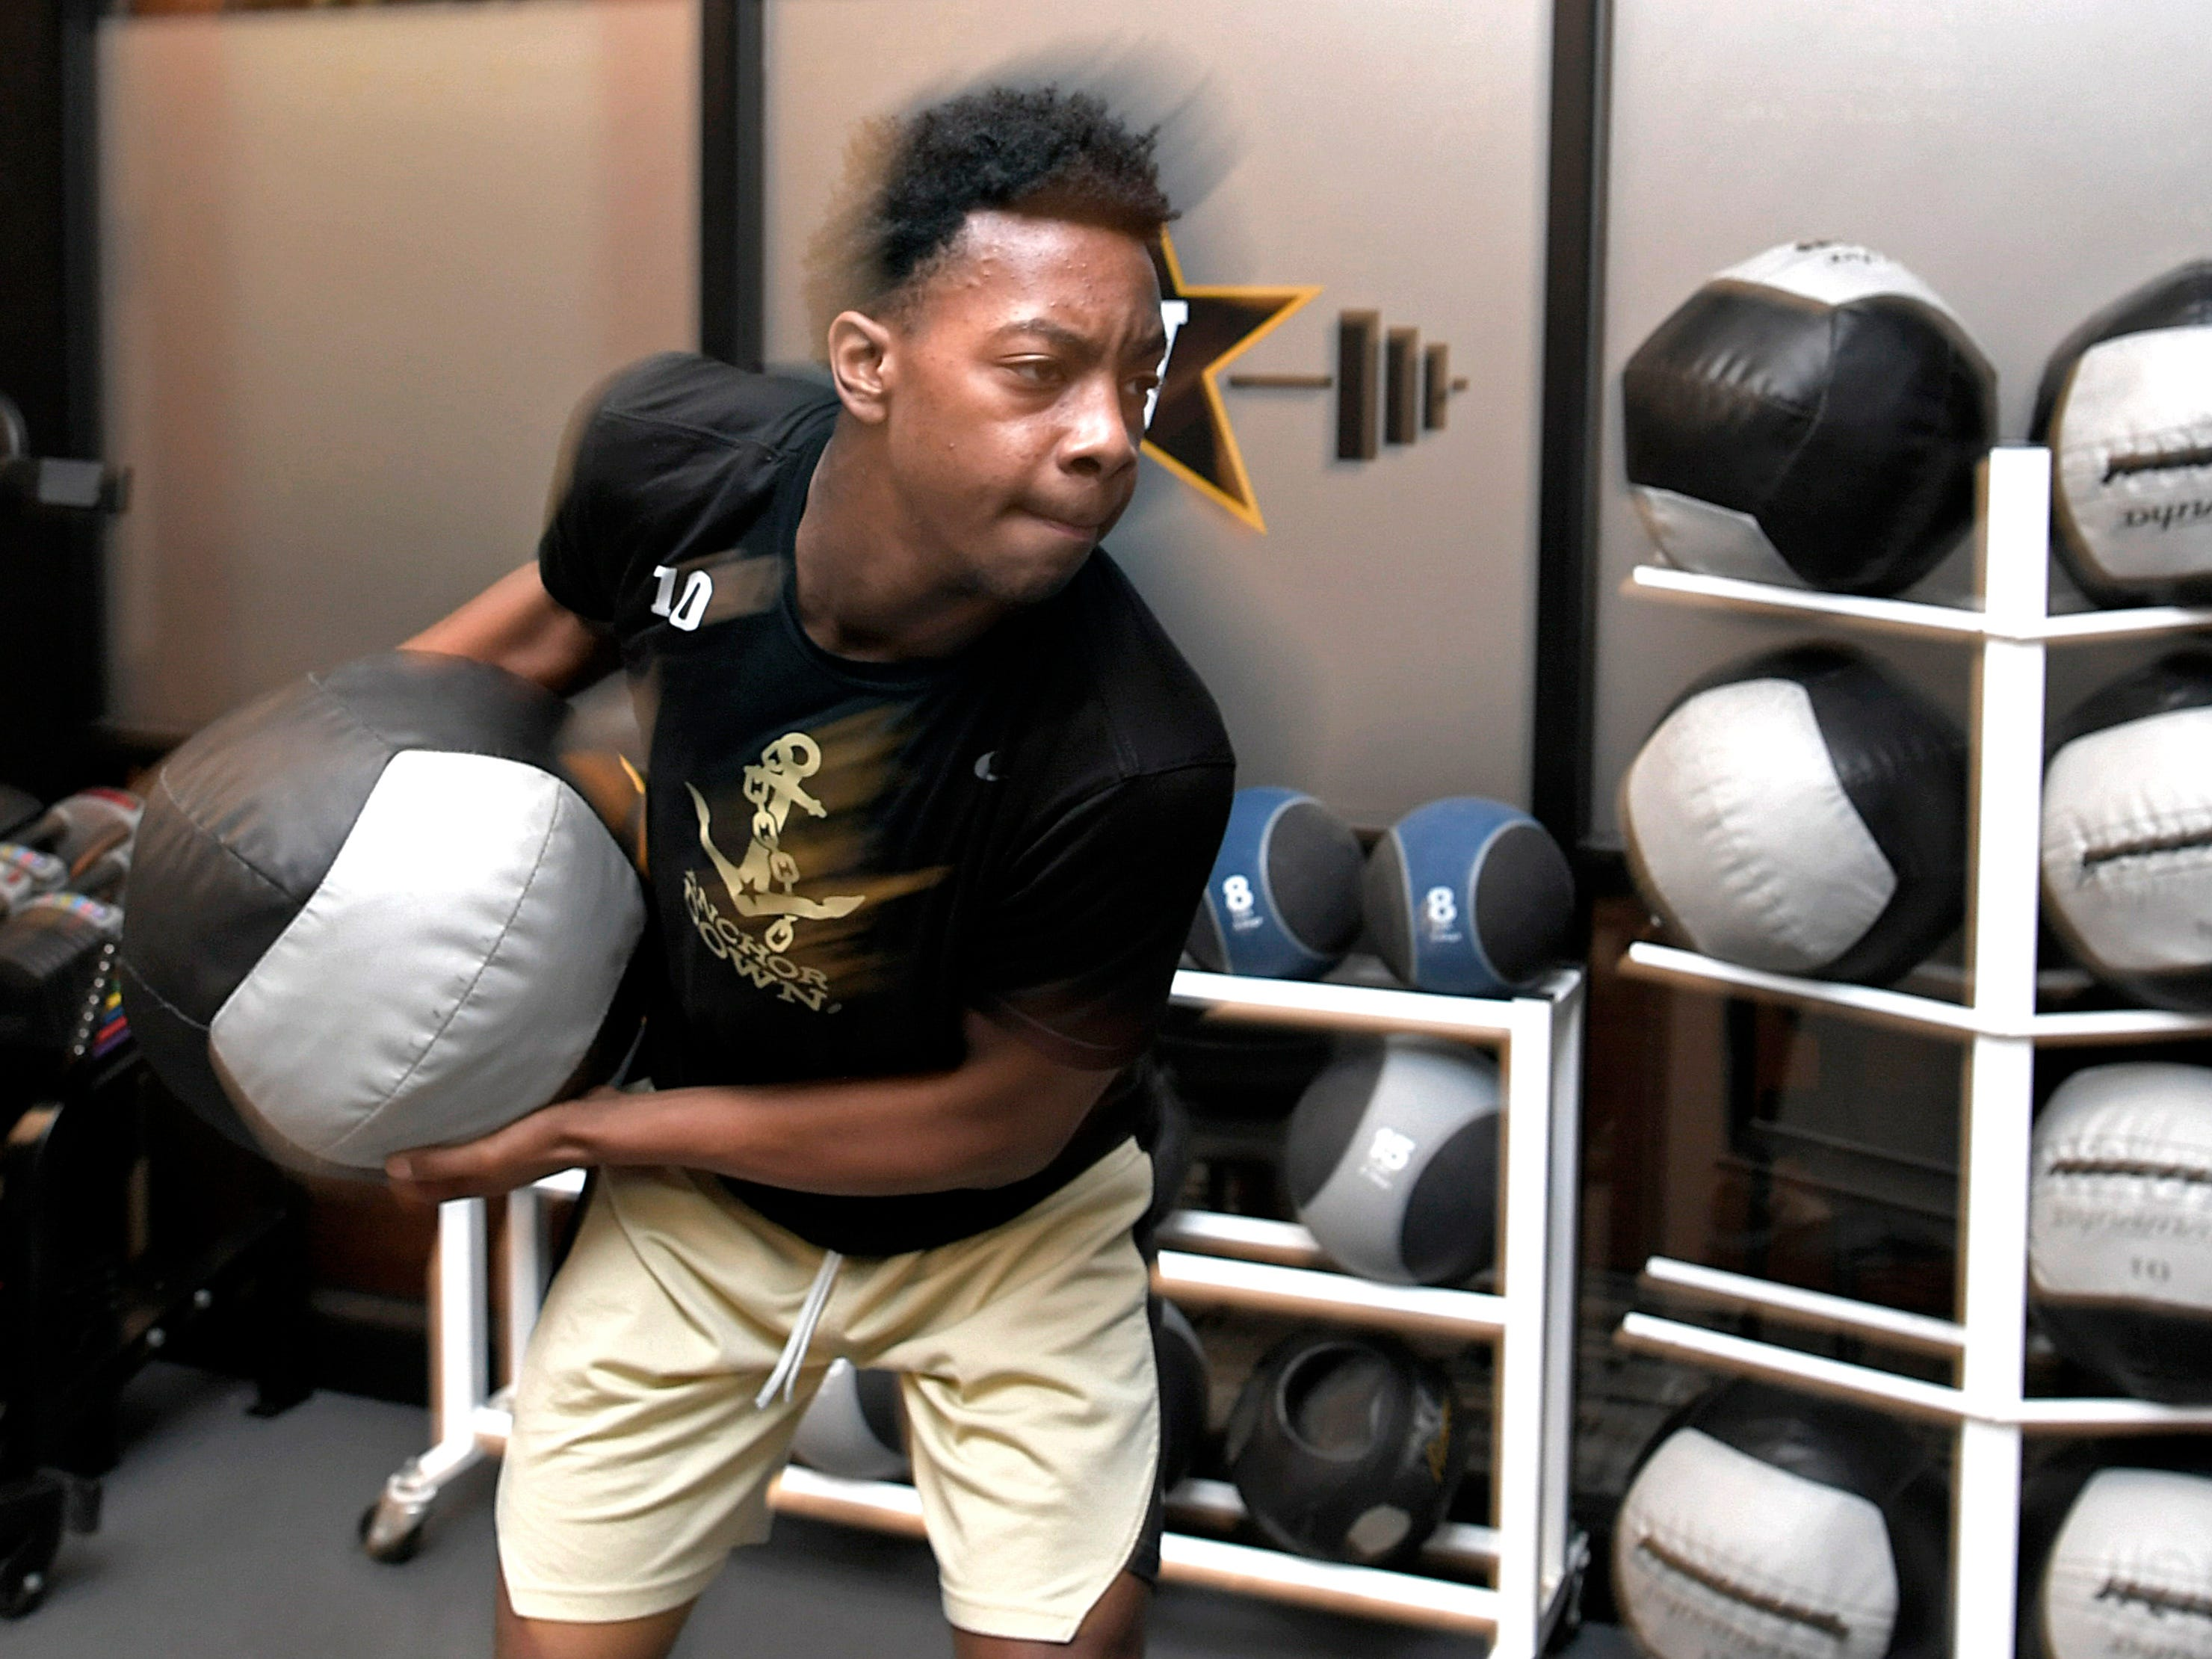 Vanderbilt basketball freshman Darius Garland works out during strength and conditioning session at Vanderbilt on Monday, Oct, 30, 2018.